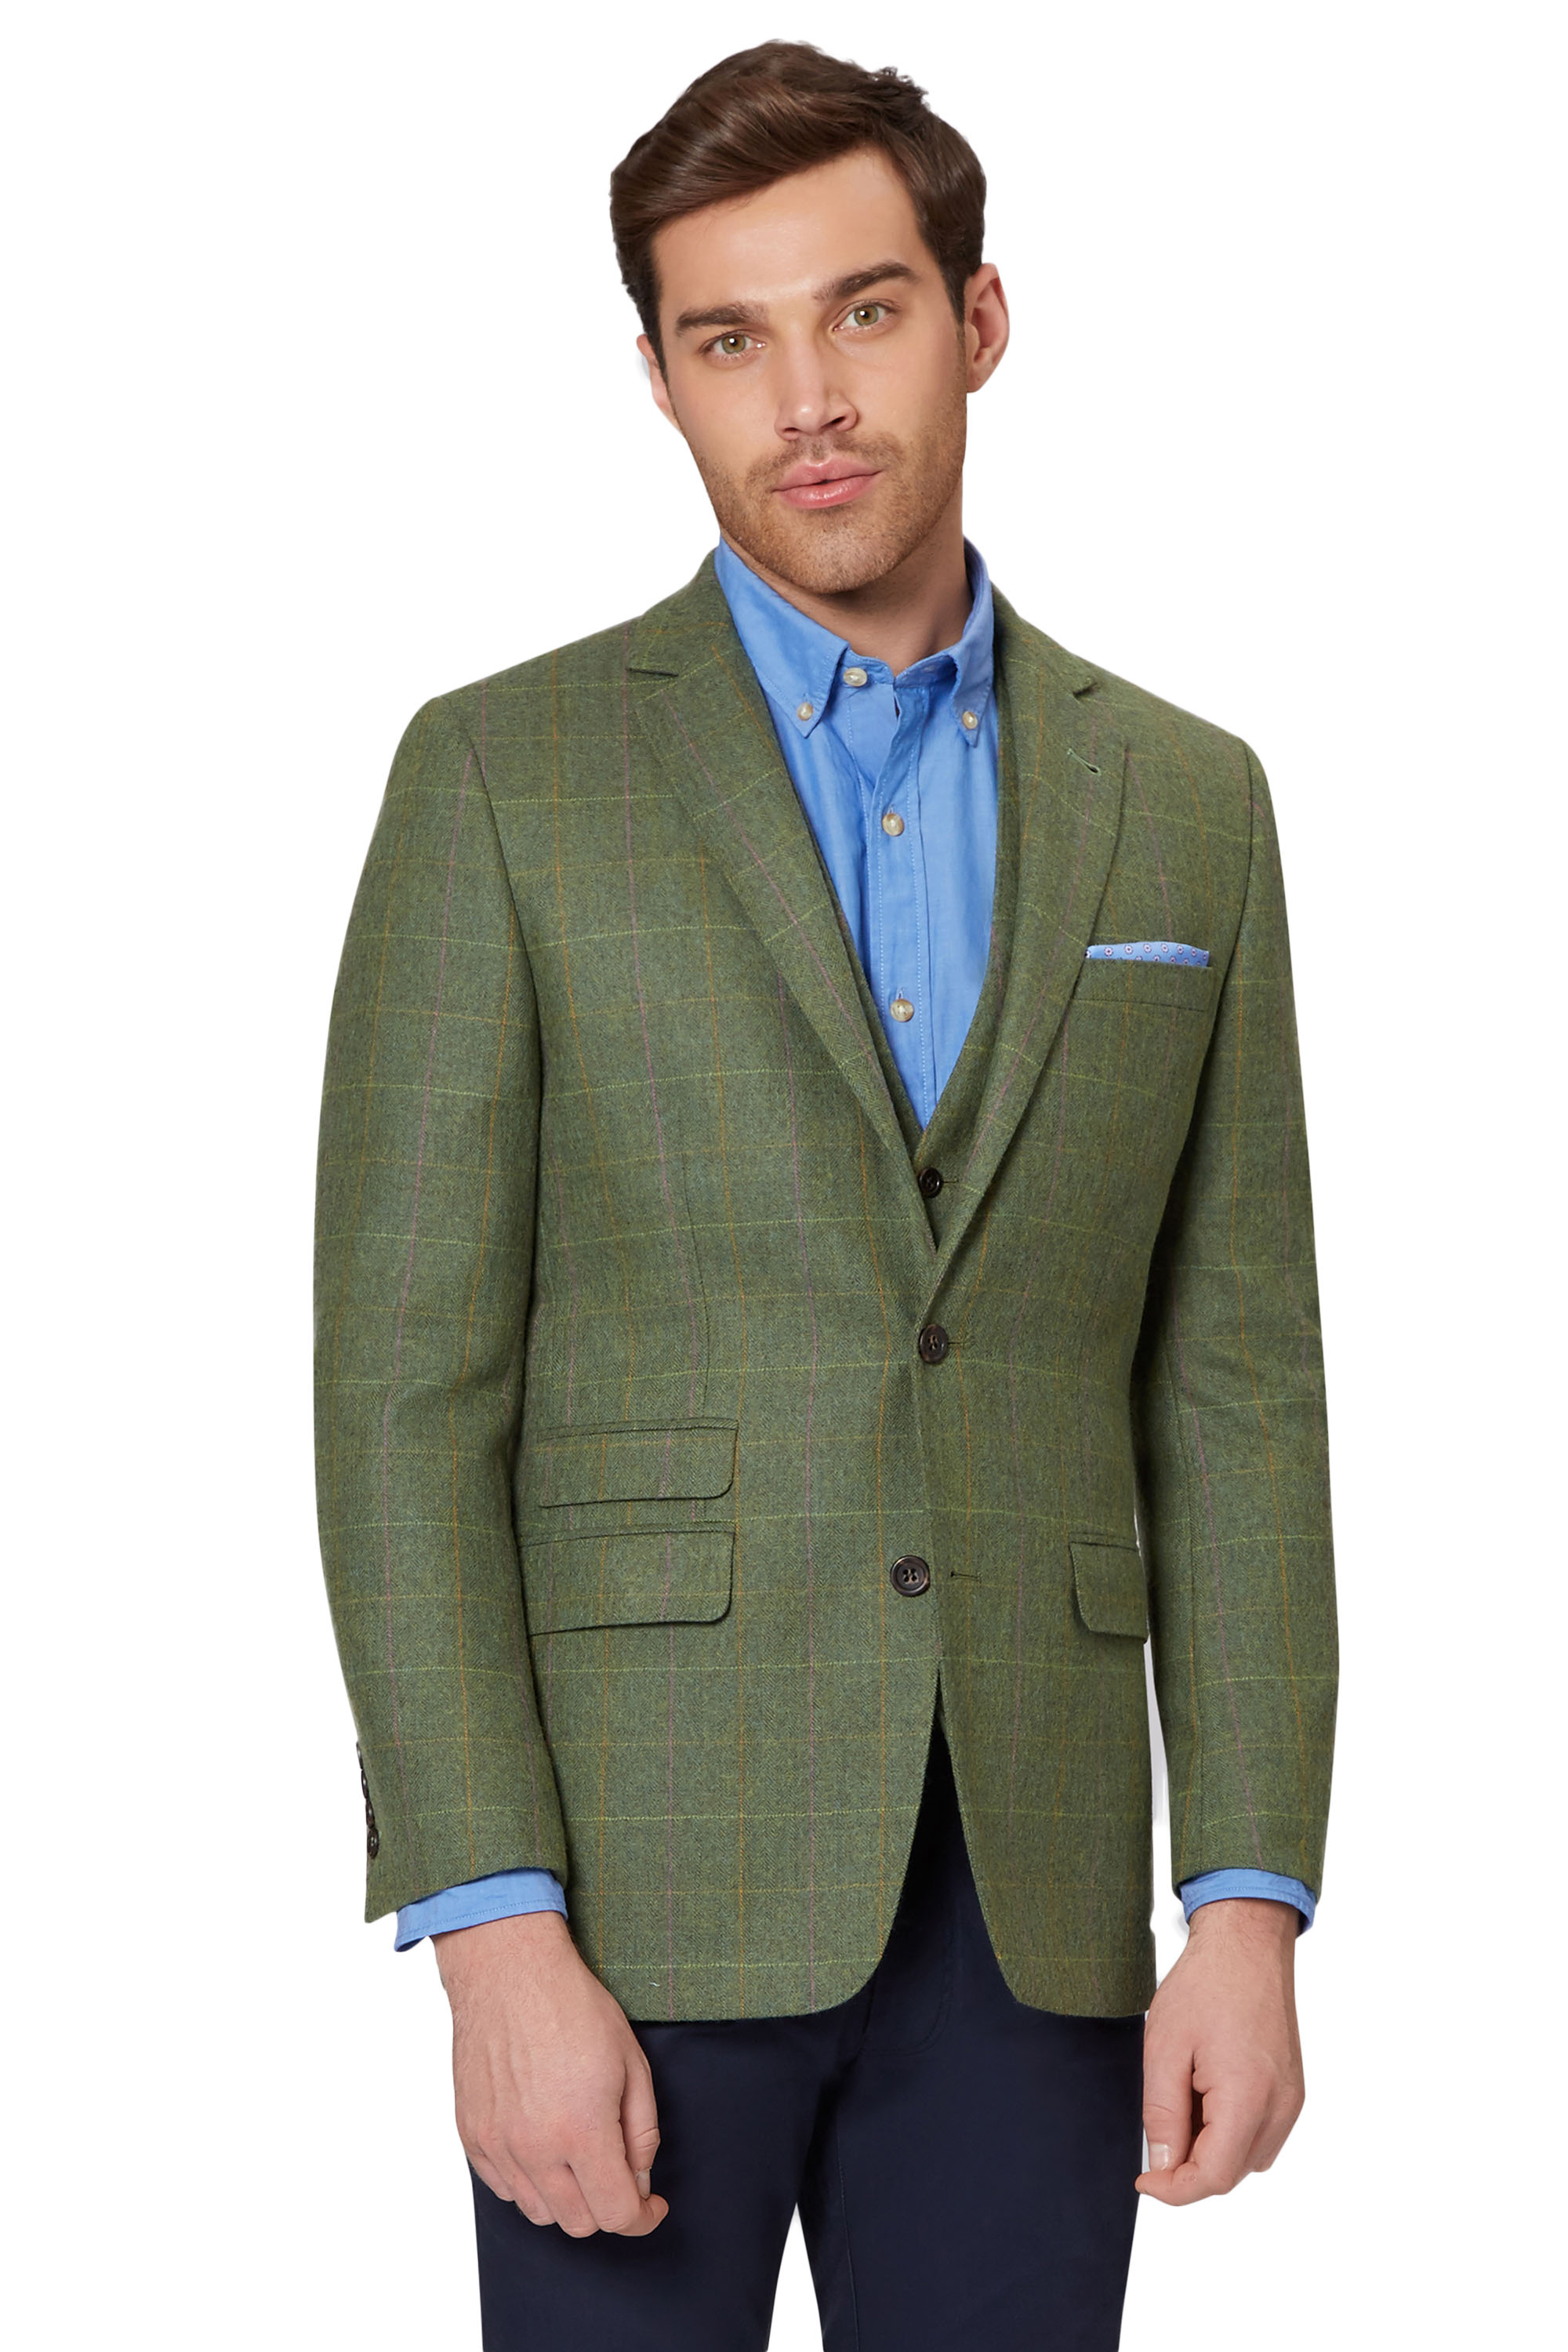 Moss 1851 Mens Bright Green Multy Check Suit Jacket Tailored Fit ...